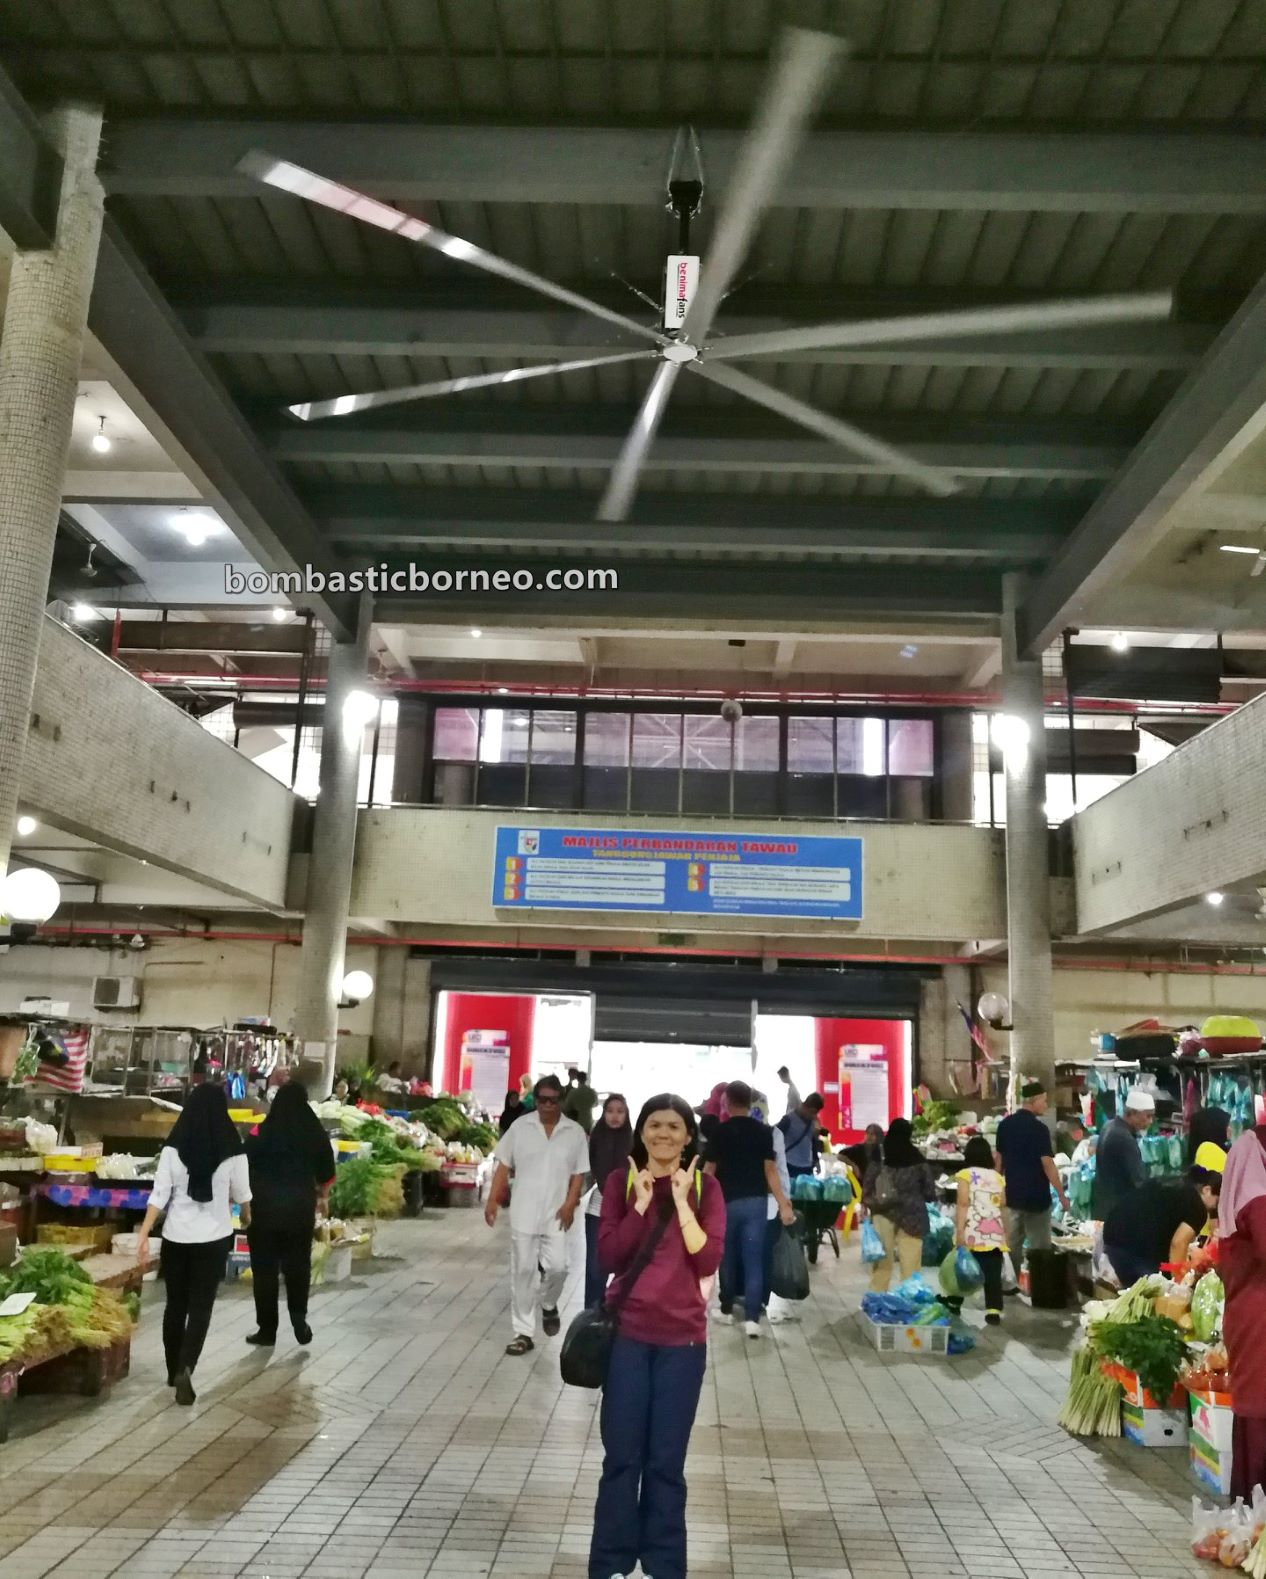 pasar, backpackers, destination, exploration, food court, Pekan, town, Tanjung Market, tourist attraction, Travel Guide, Trans Borneo, 跨境婆罗洲游踪, 马来西亚沙巴, 斗湖巴刹,